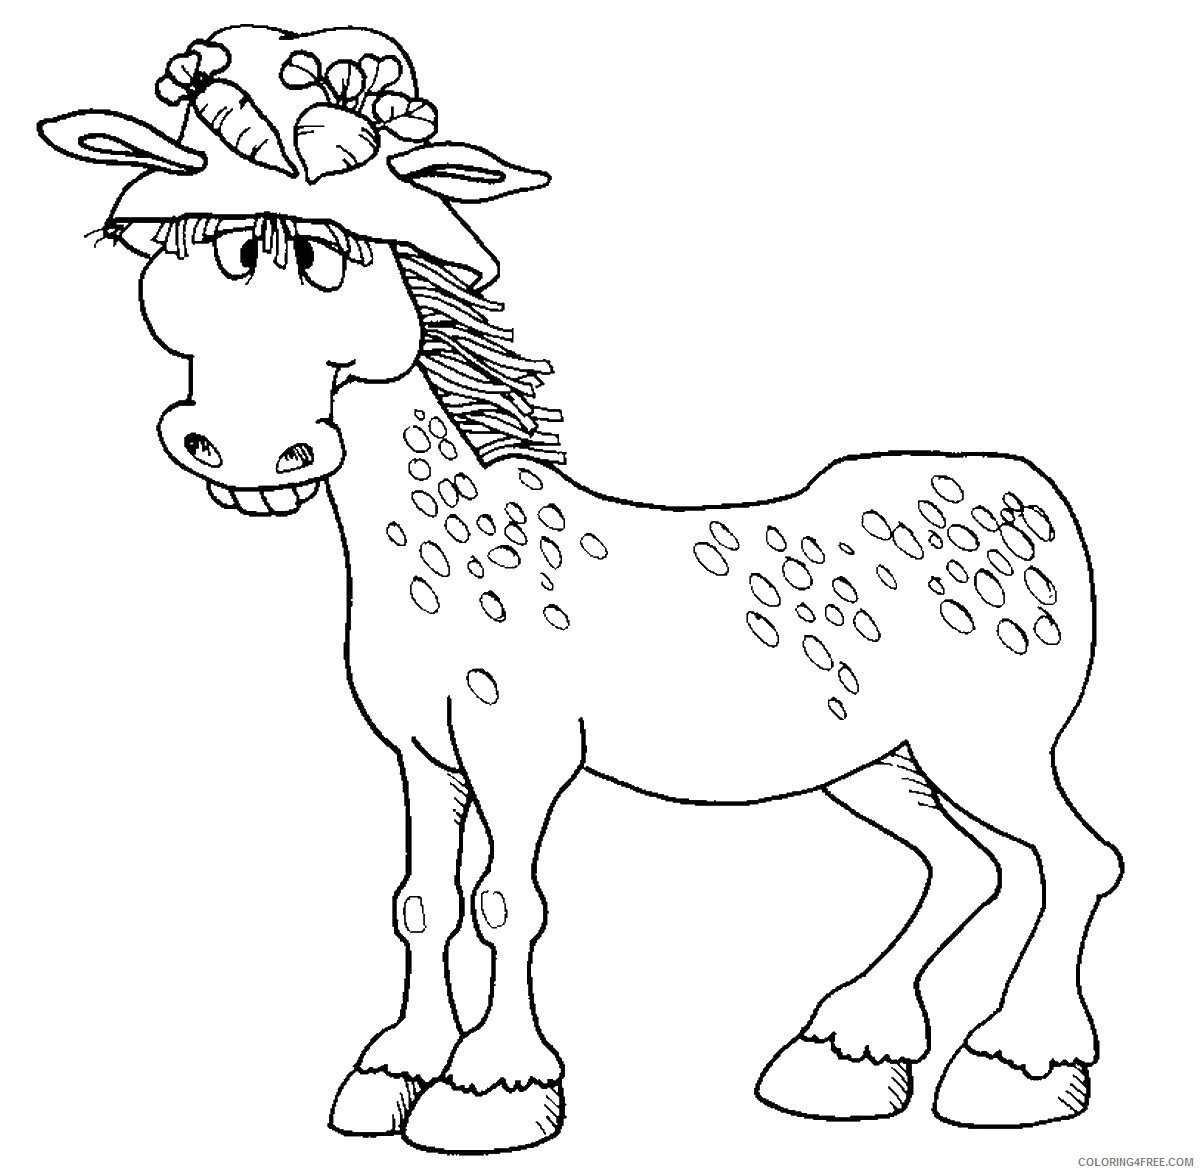 Strawberry Shortcake Coloring Pages TV Film Printable 2020 08111 Coloring4free